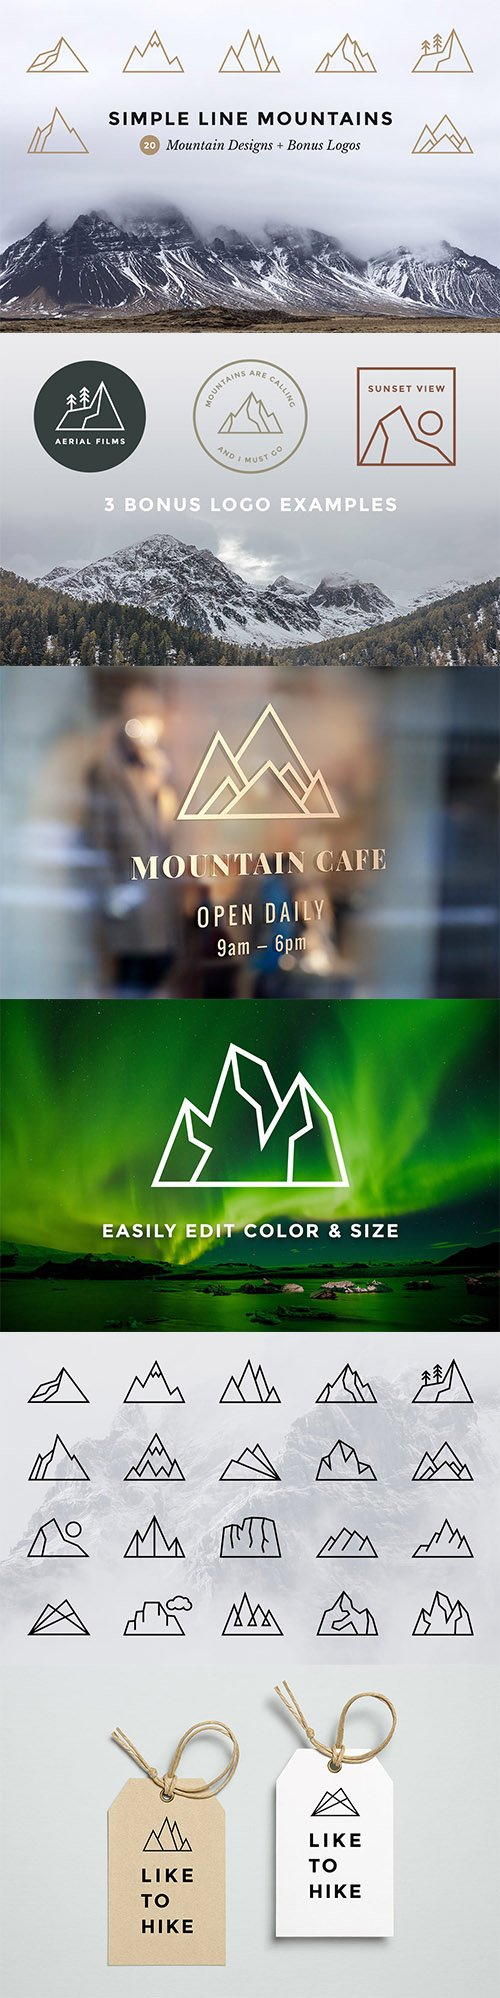 Simple Line Mountains